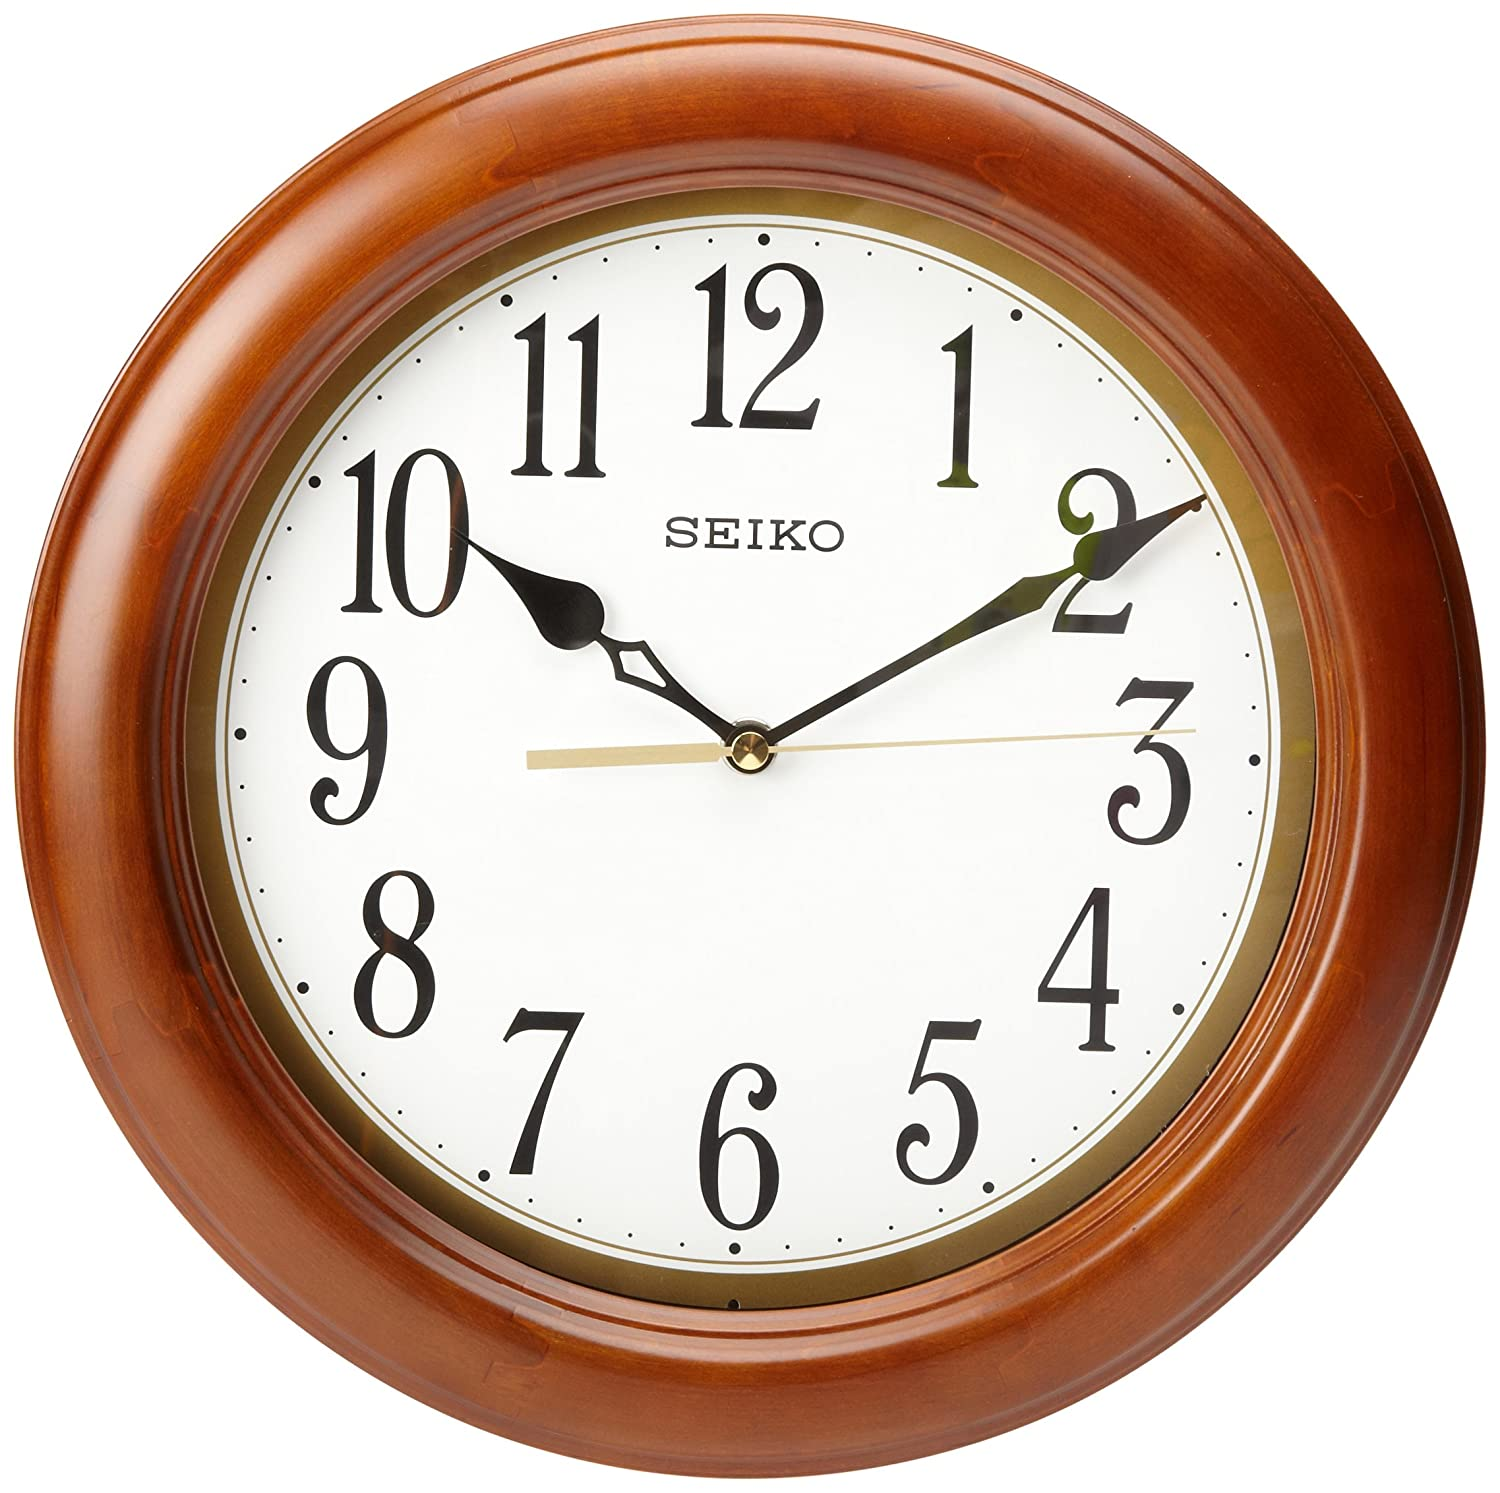 Buy seiko qxa522blh classic wall clock online at low prices in buy seiko qxa522blh classic wall clock online at low prices in india amazon amipublicfo Image collections